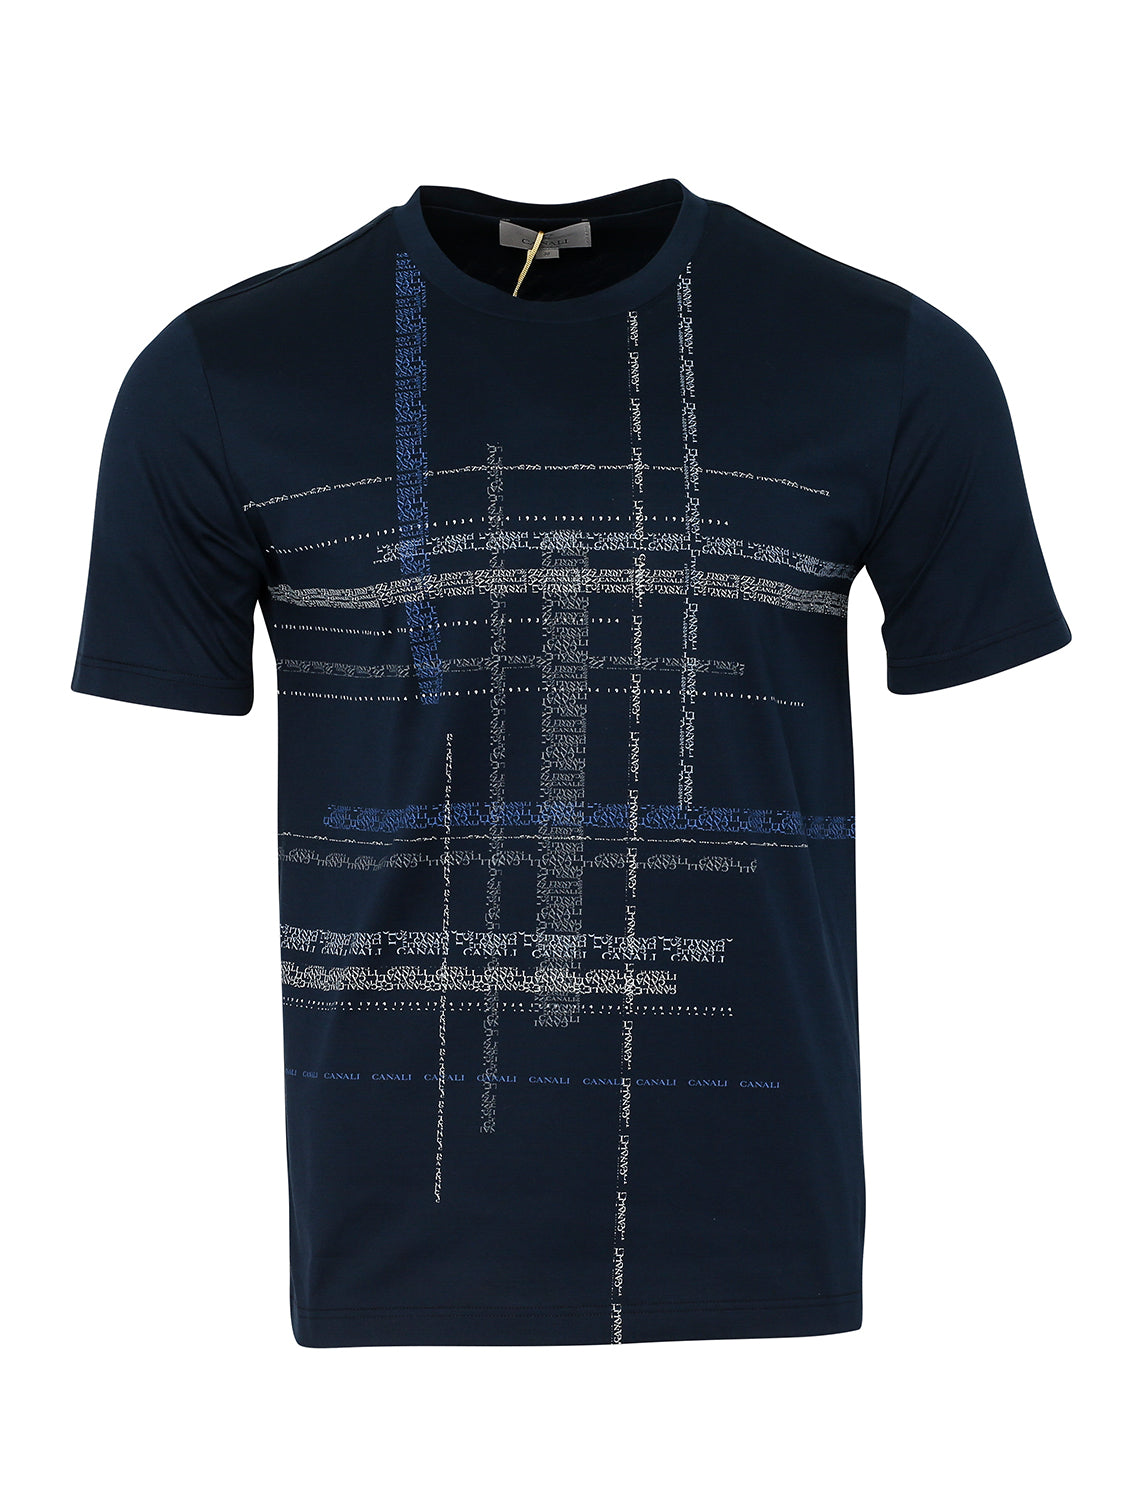 Canali Crew Text Print T-Shirt (Navy) - Union 22